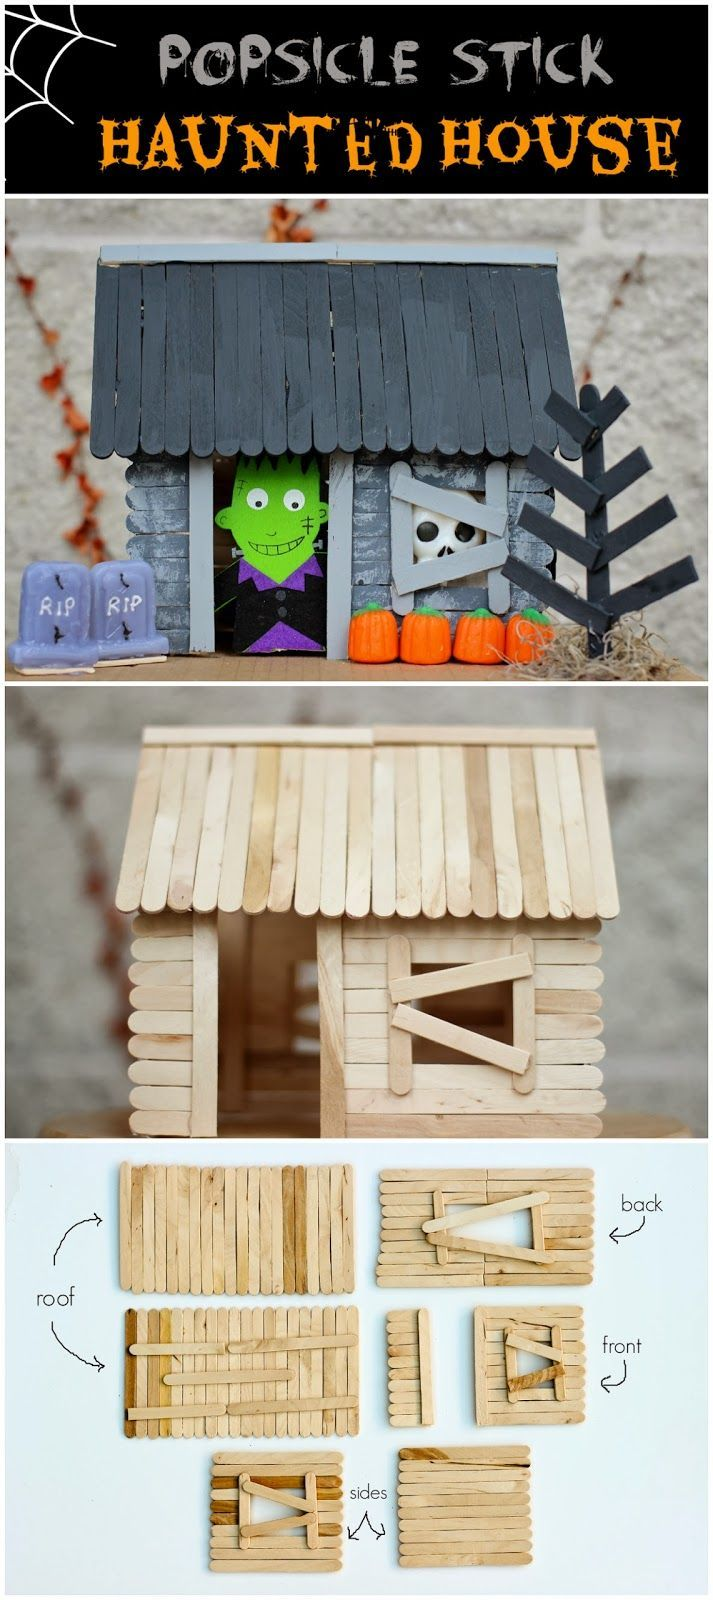 House design using popsicle sticks - How To Make A Popsicle Stick Haunted House Diy Craft Halloween Crafts How To Tutorials Halloween Decorations Halloween Crafts Halloween Diy Halloween Decor